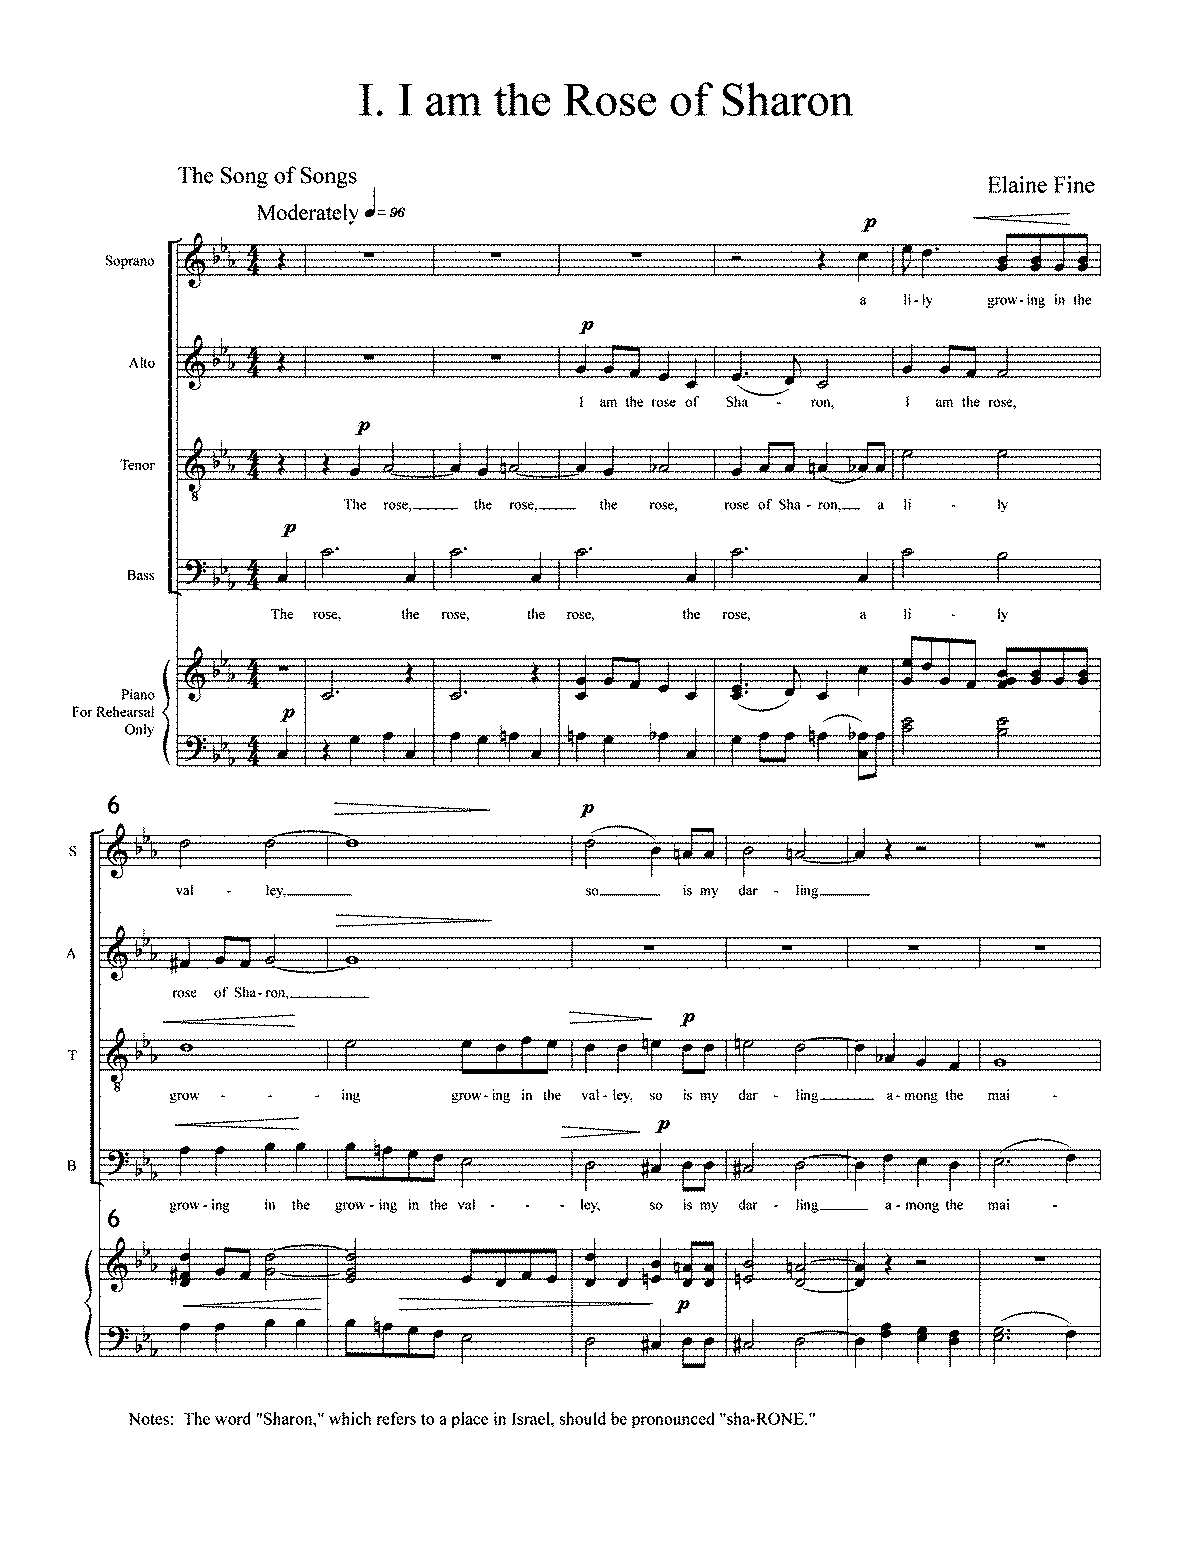 WIMA.a41c-Fine Two Choral Pieces from the Song of Songs.pdf